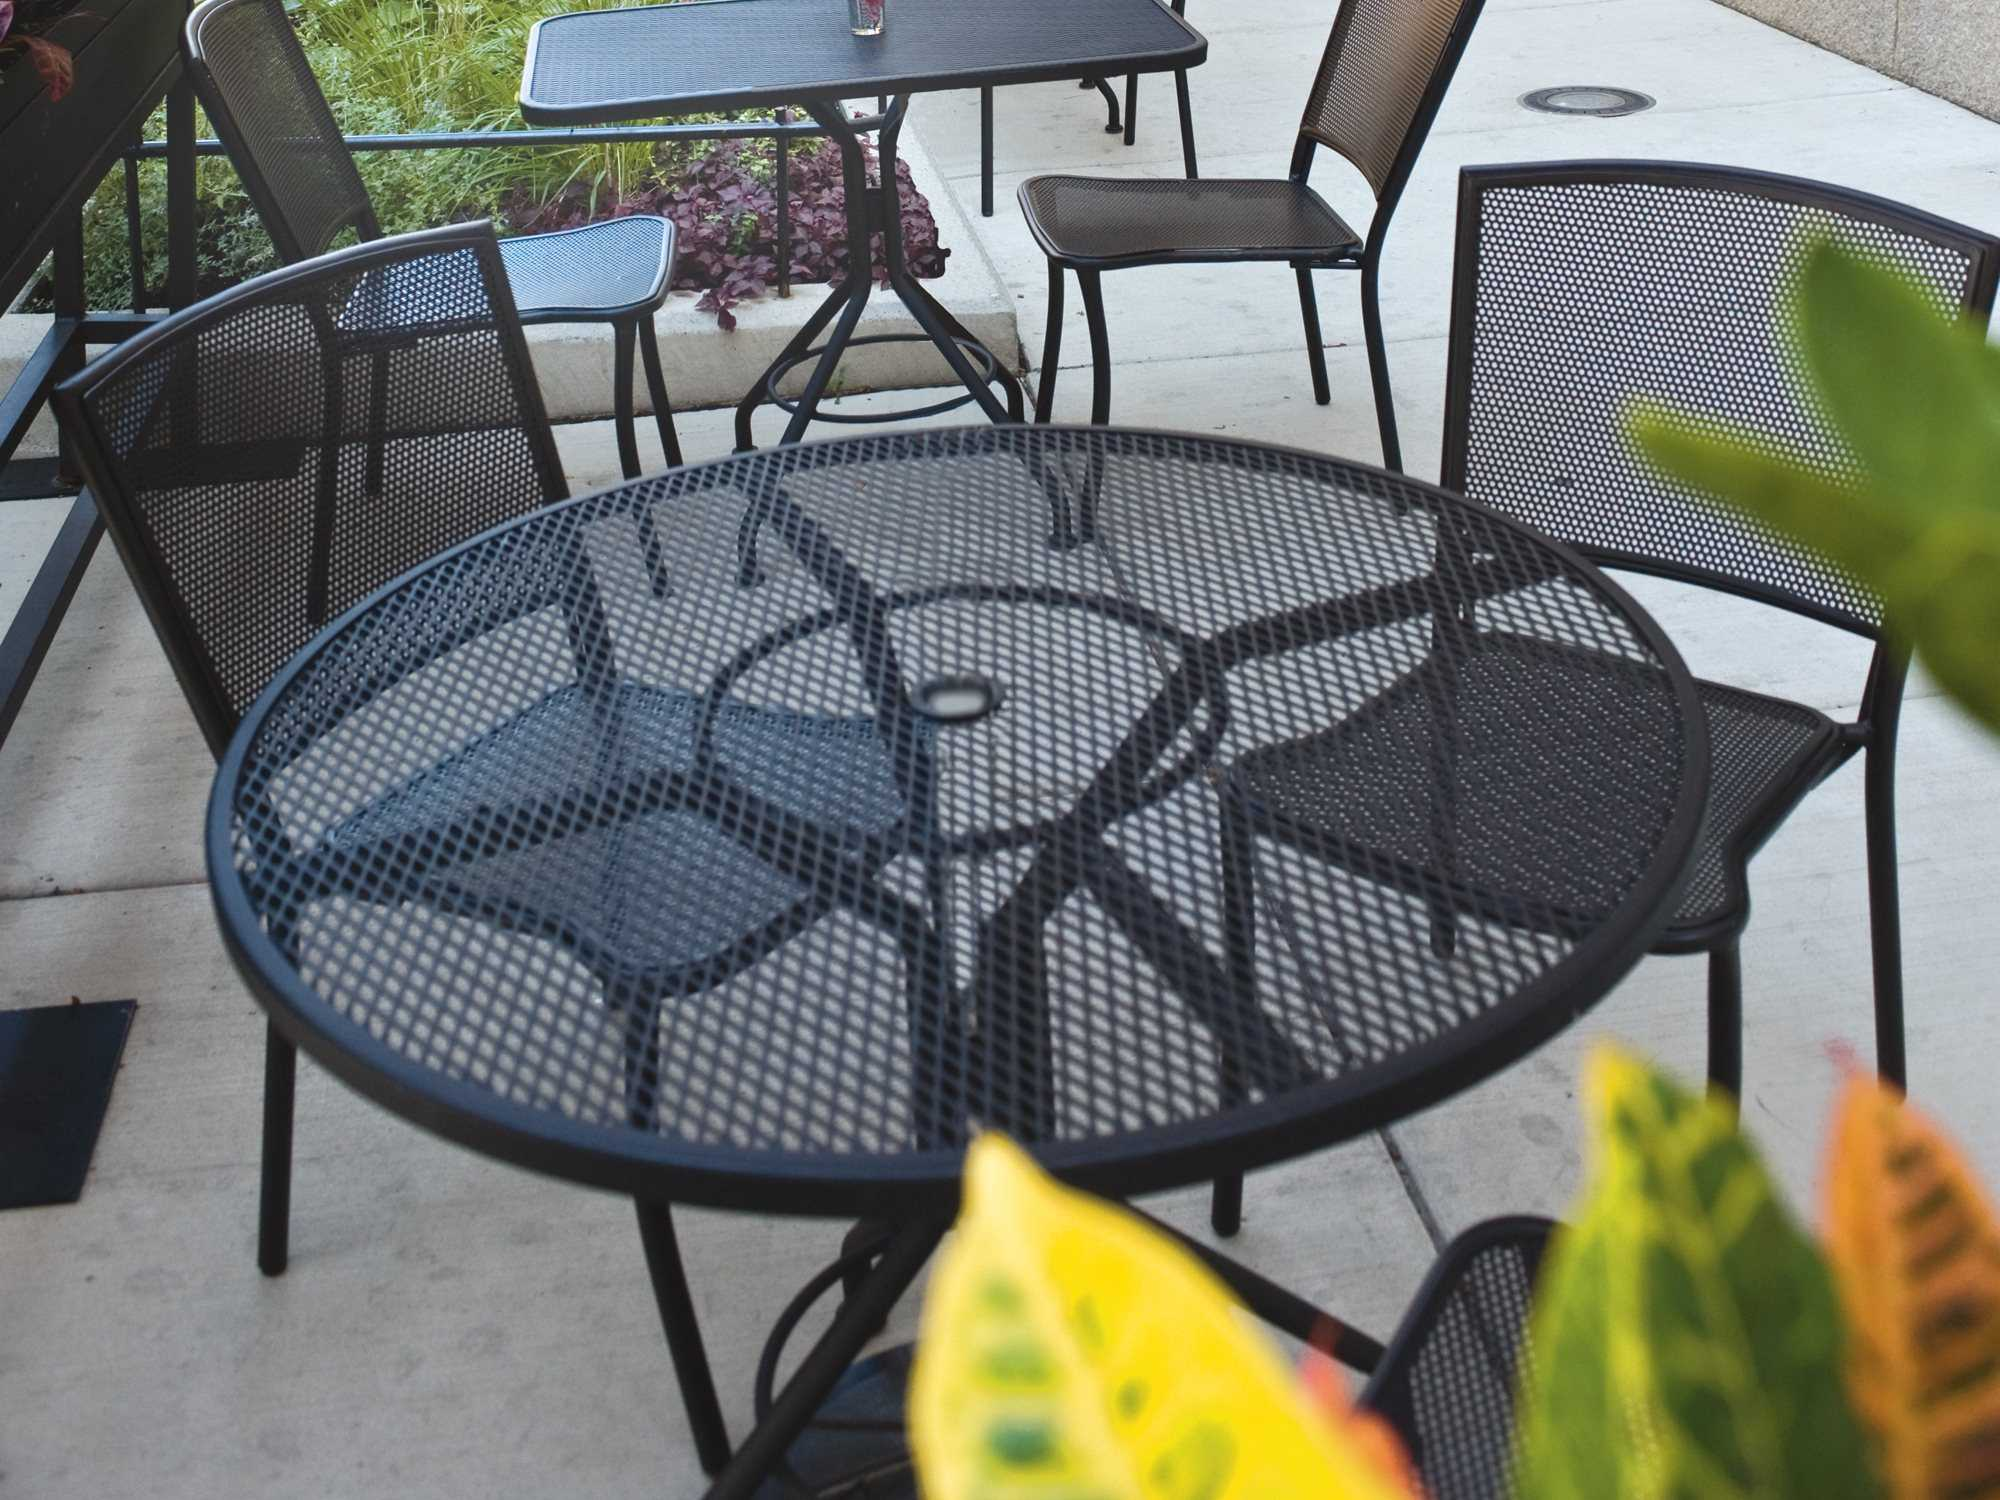 iron chair price massage and stool woodard mesh wrought 48 round table with umbrella